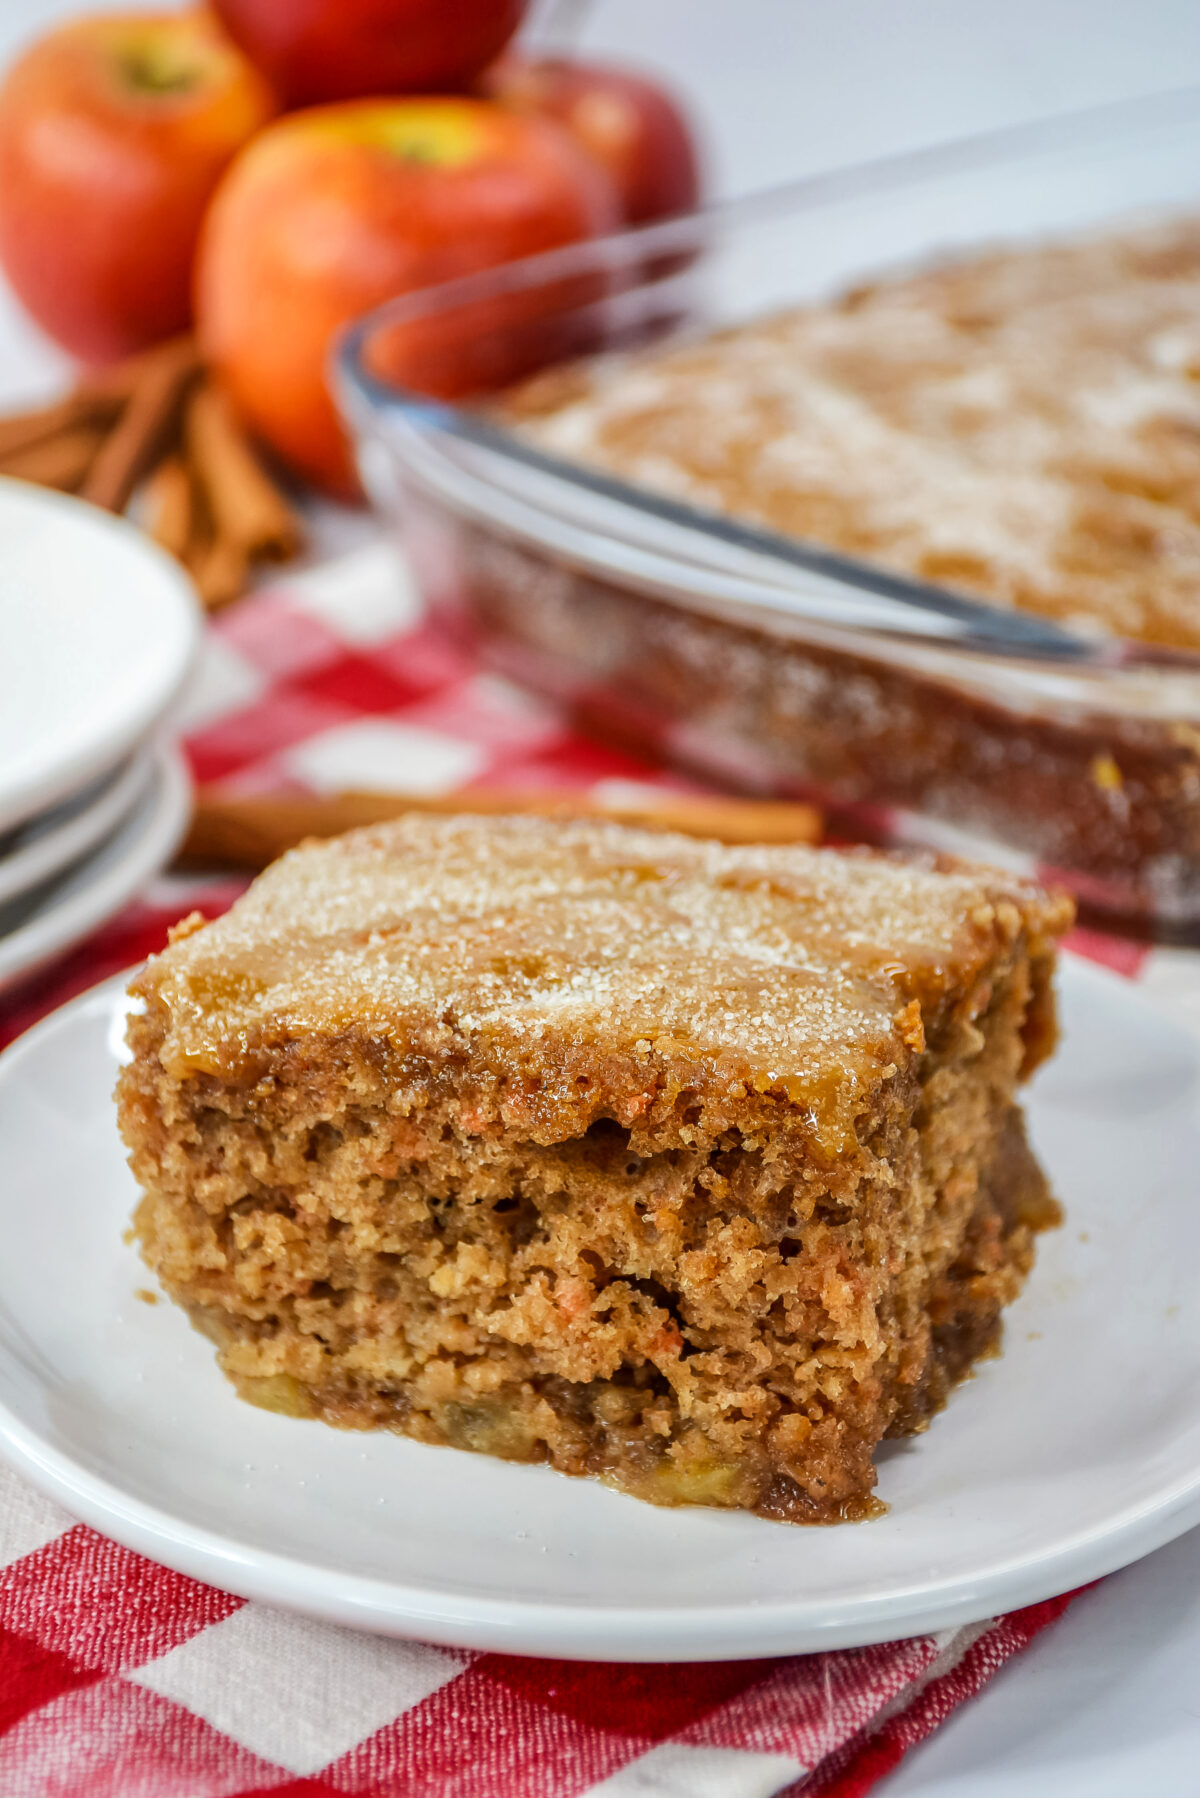 This cinnamon apple cake recipe is sure to become a family favorite! It's loaded with apples and topped off with a sweet sugar crust.